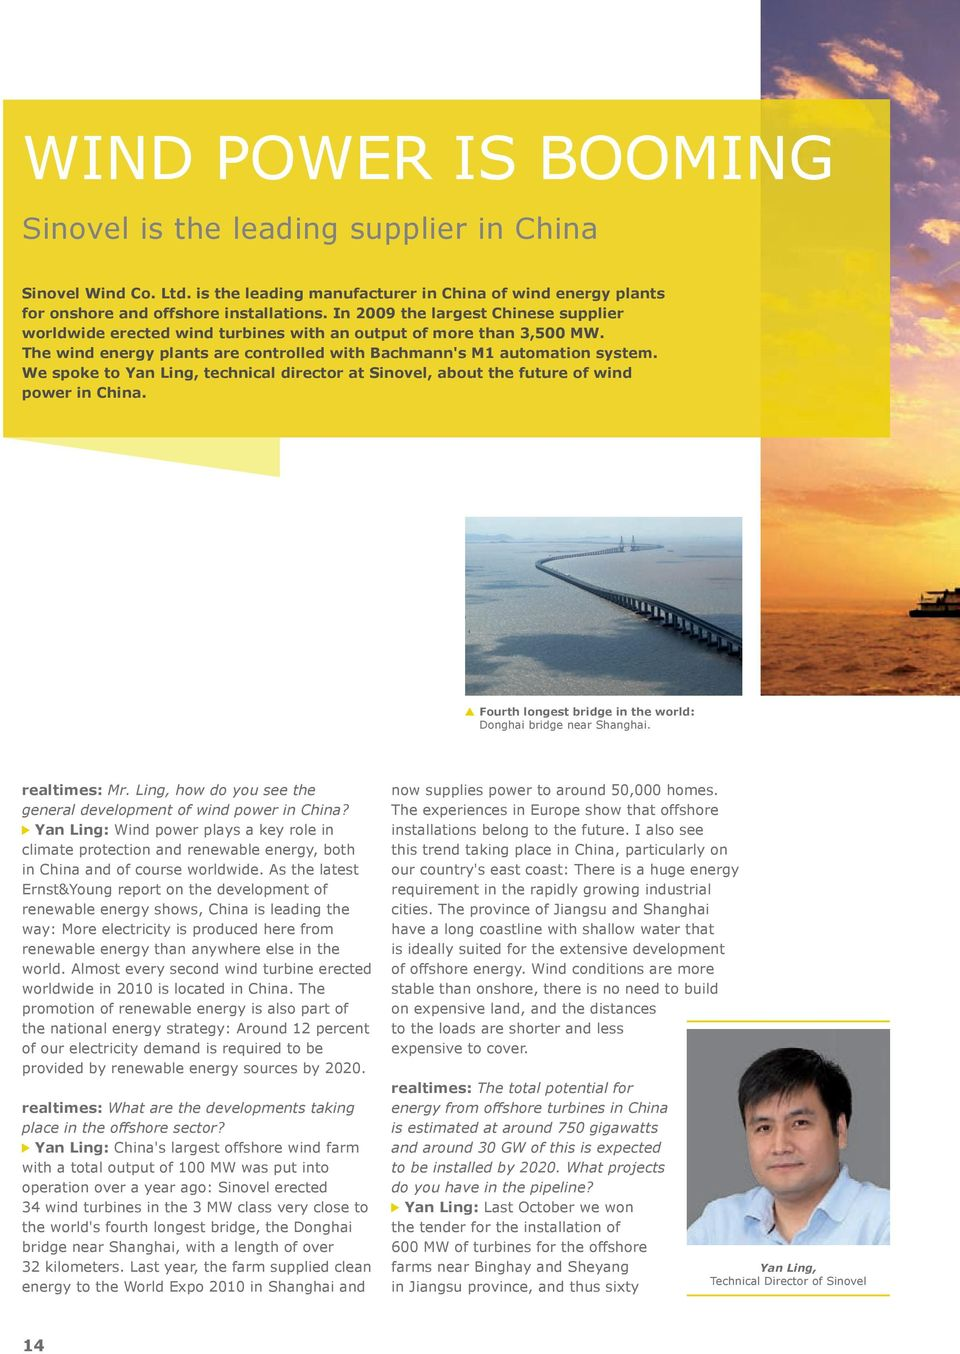 we spoke to Yan ling, technical director at Sinovel, about the future of wind power in china. fourth longest bridge in the world: Donghai bridge near Shanghai. realtimes: Mr.